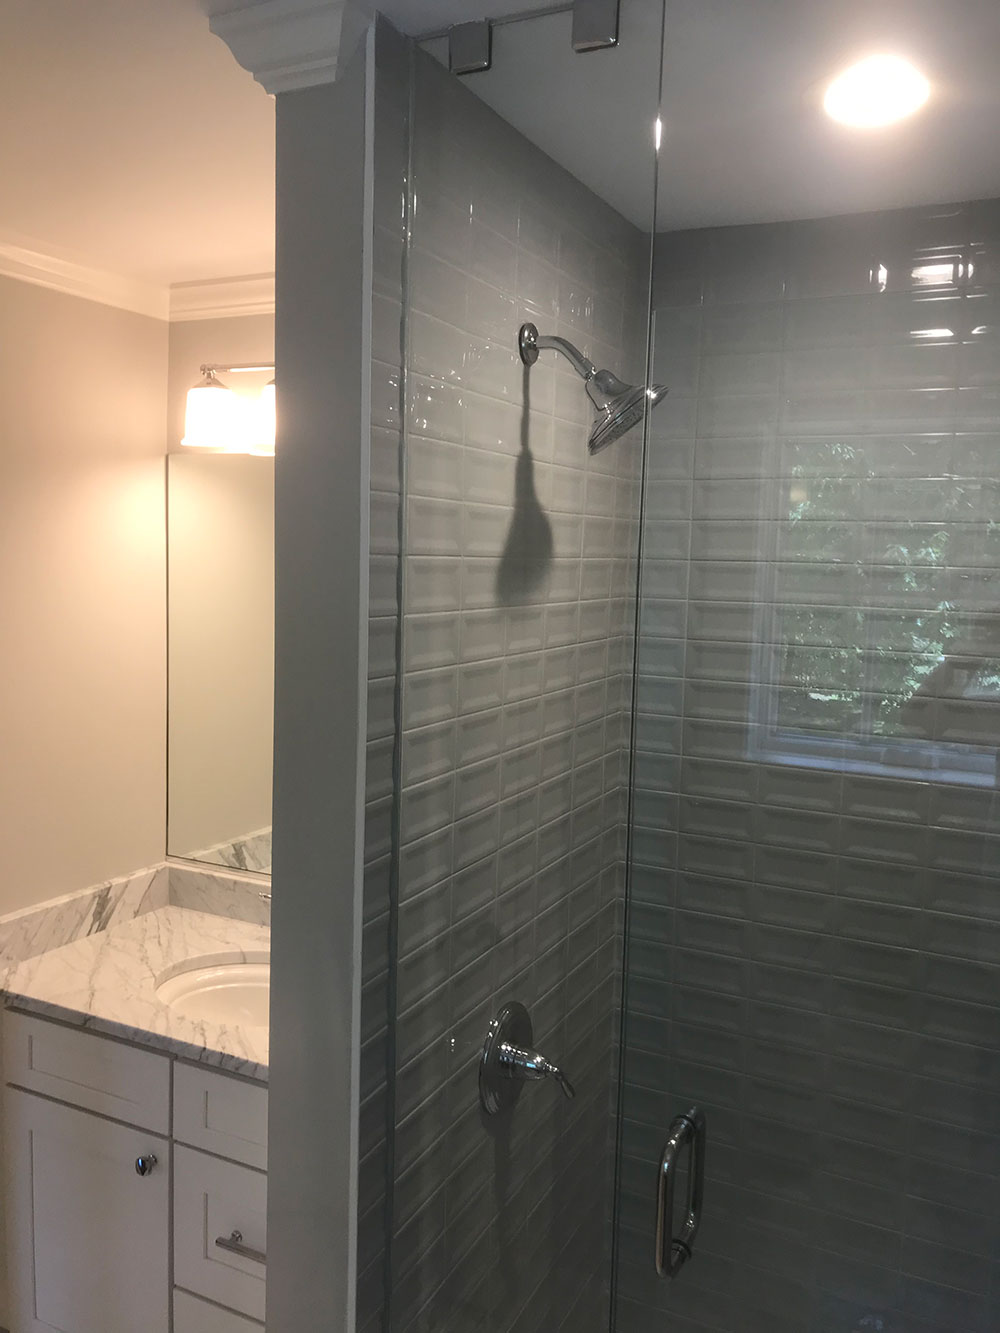 R&M Glass Shower Glass Boston Image 13